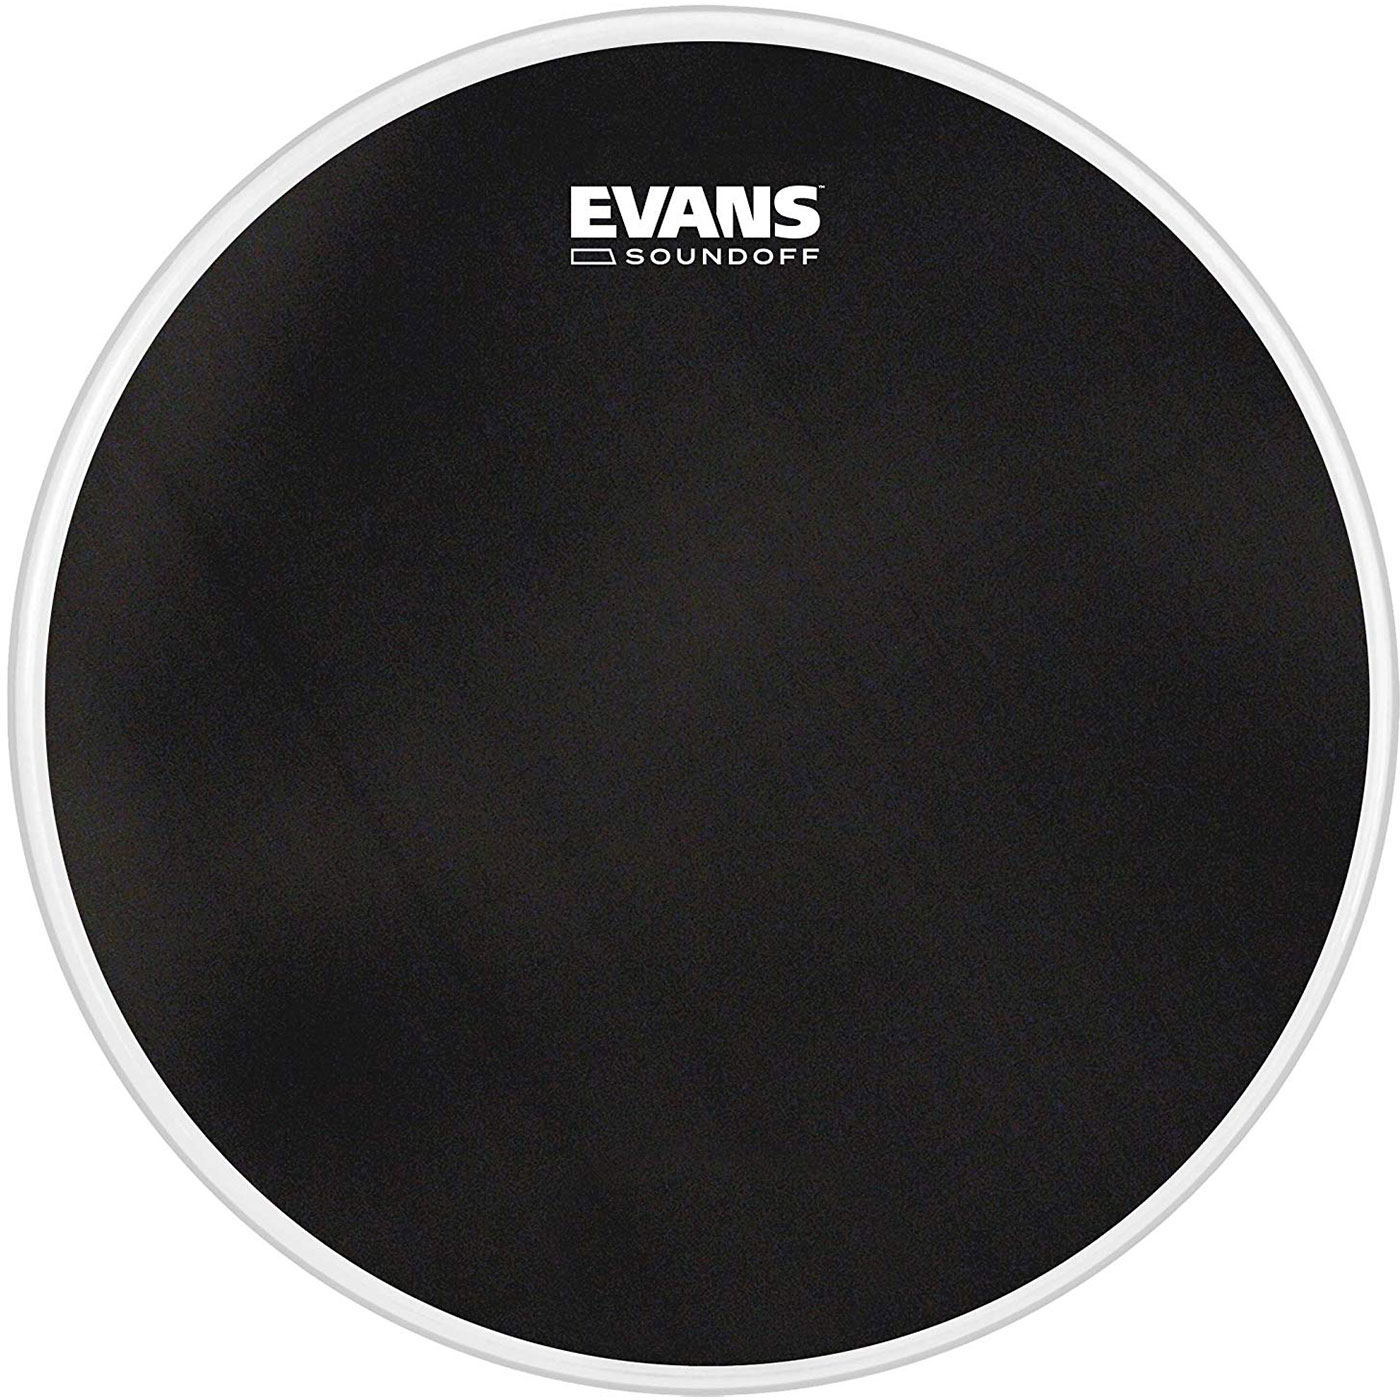 "Evans 22"" SoundOff Mesh Bass Drum Head"